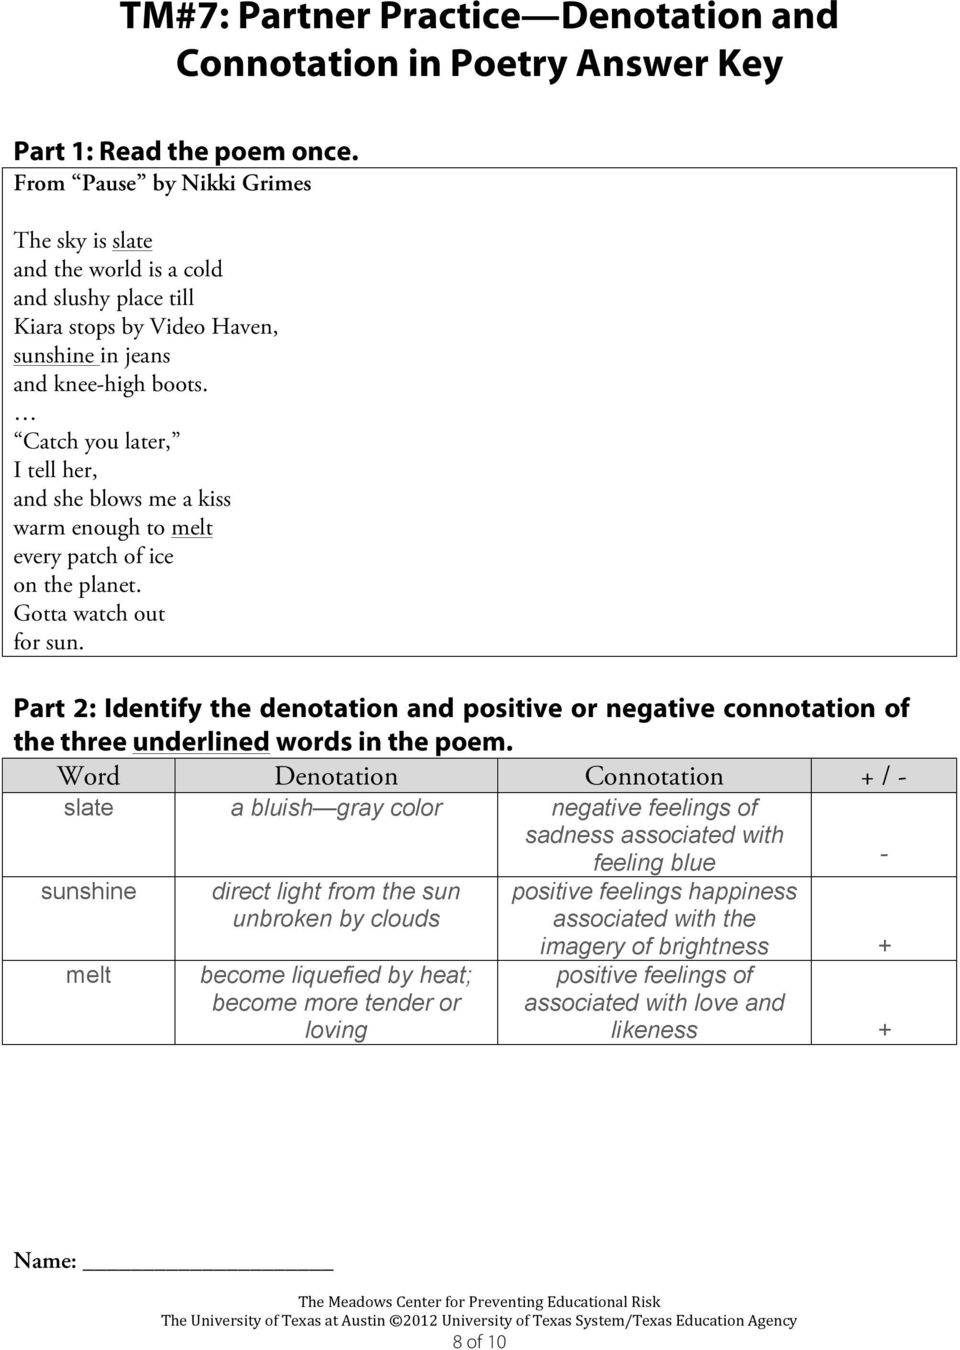 Denotation connotation and negative positive and What do